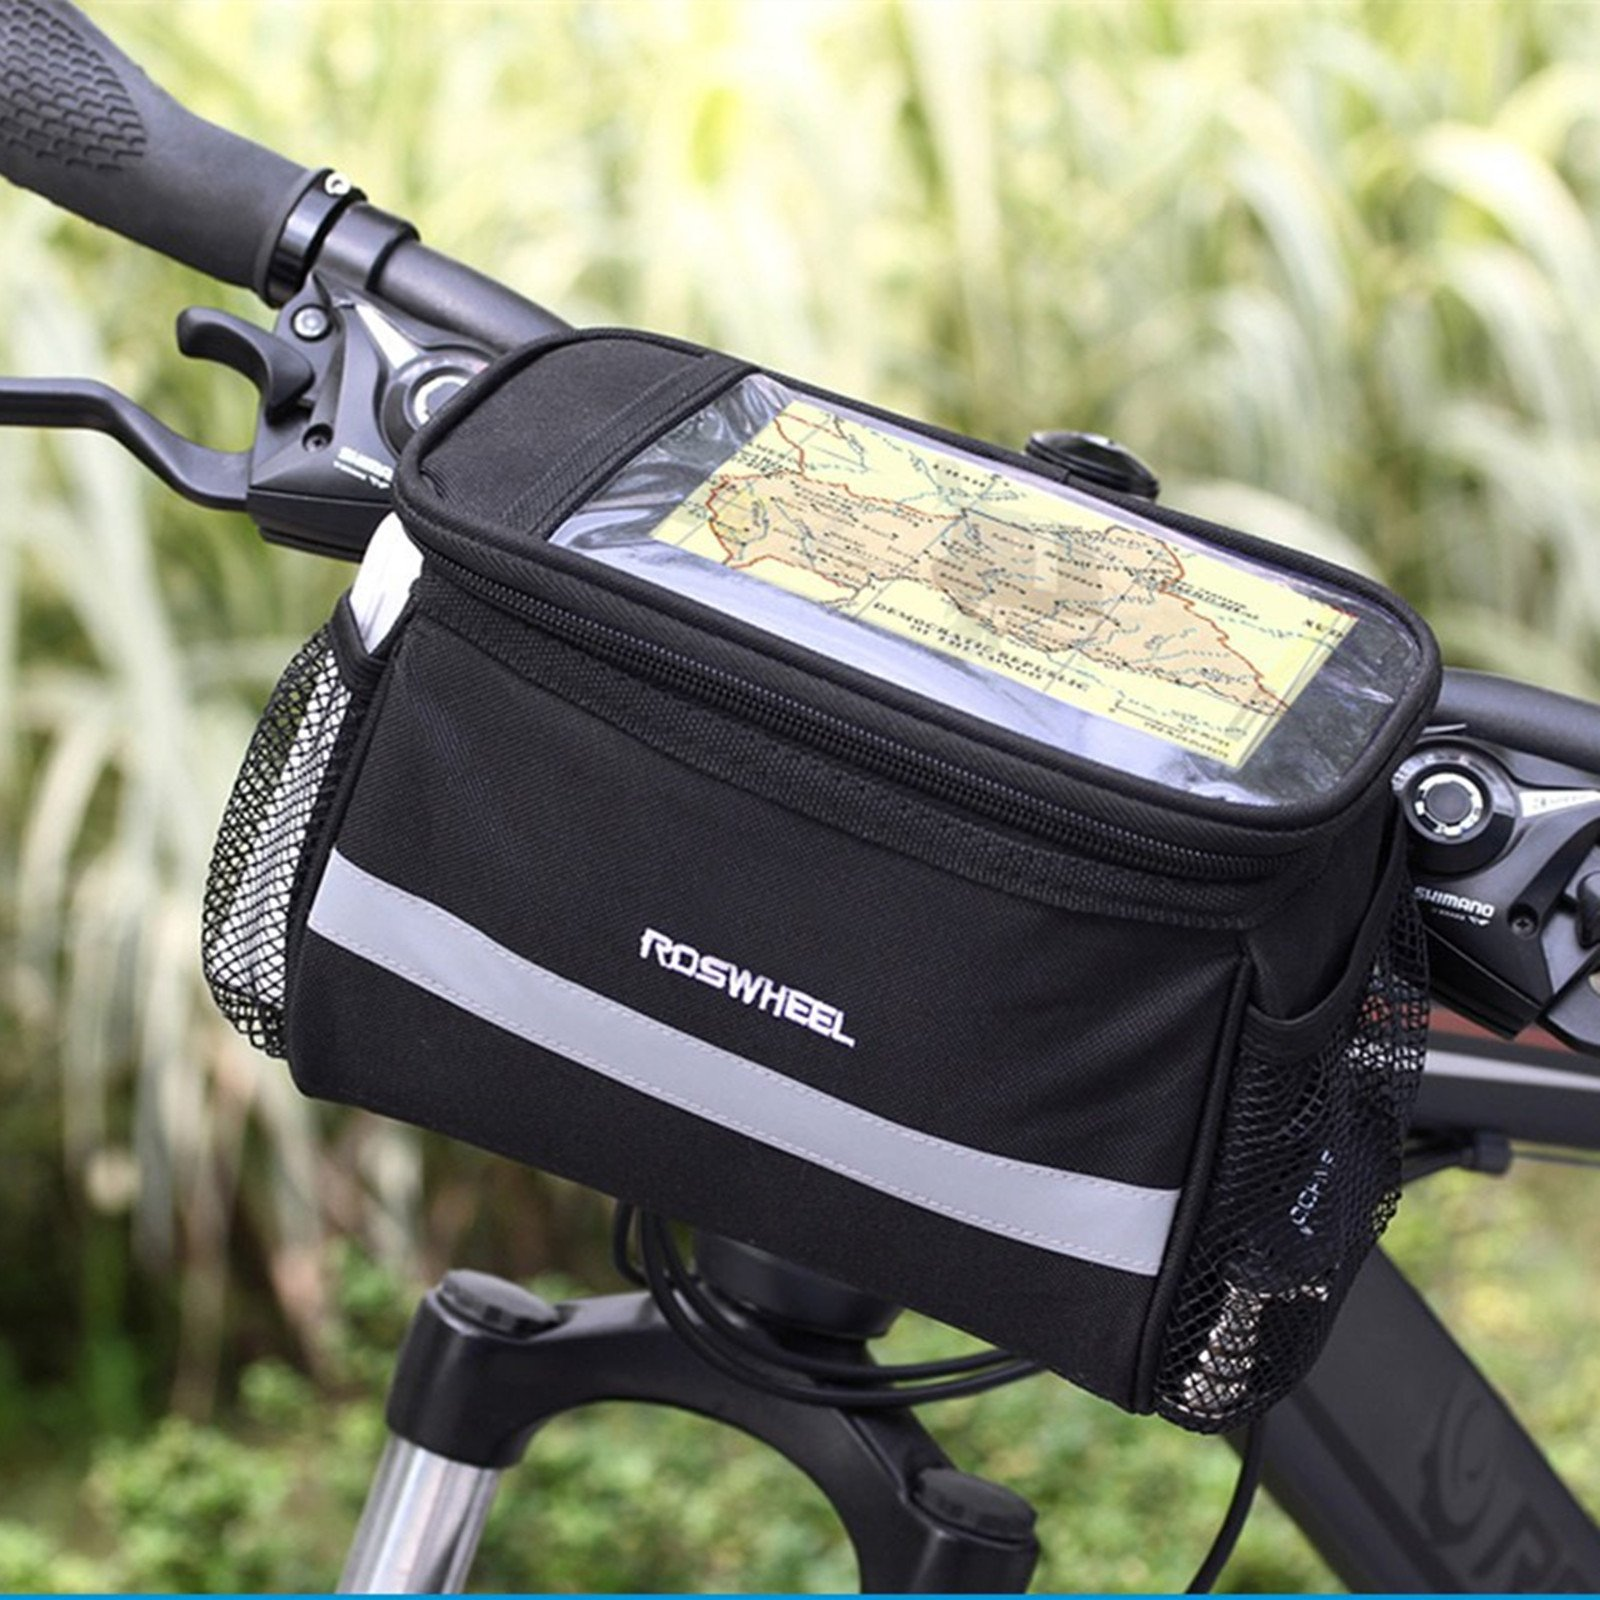 TRADERPLUS Bicycle Basket Handlebar Bag with Sliver Grey Reflective Stripe for Mountain Bike Outdoor Activity Cycling Pack Accessories 3.5L by TRADERPLUS (Image #3)